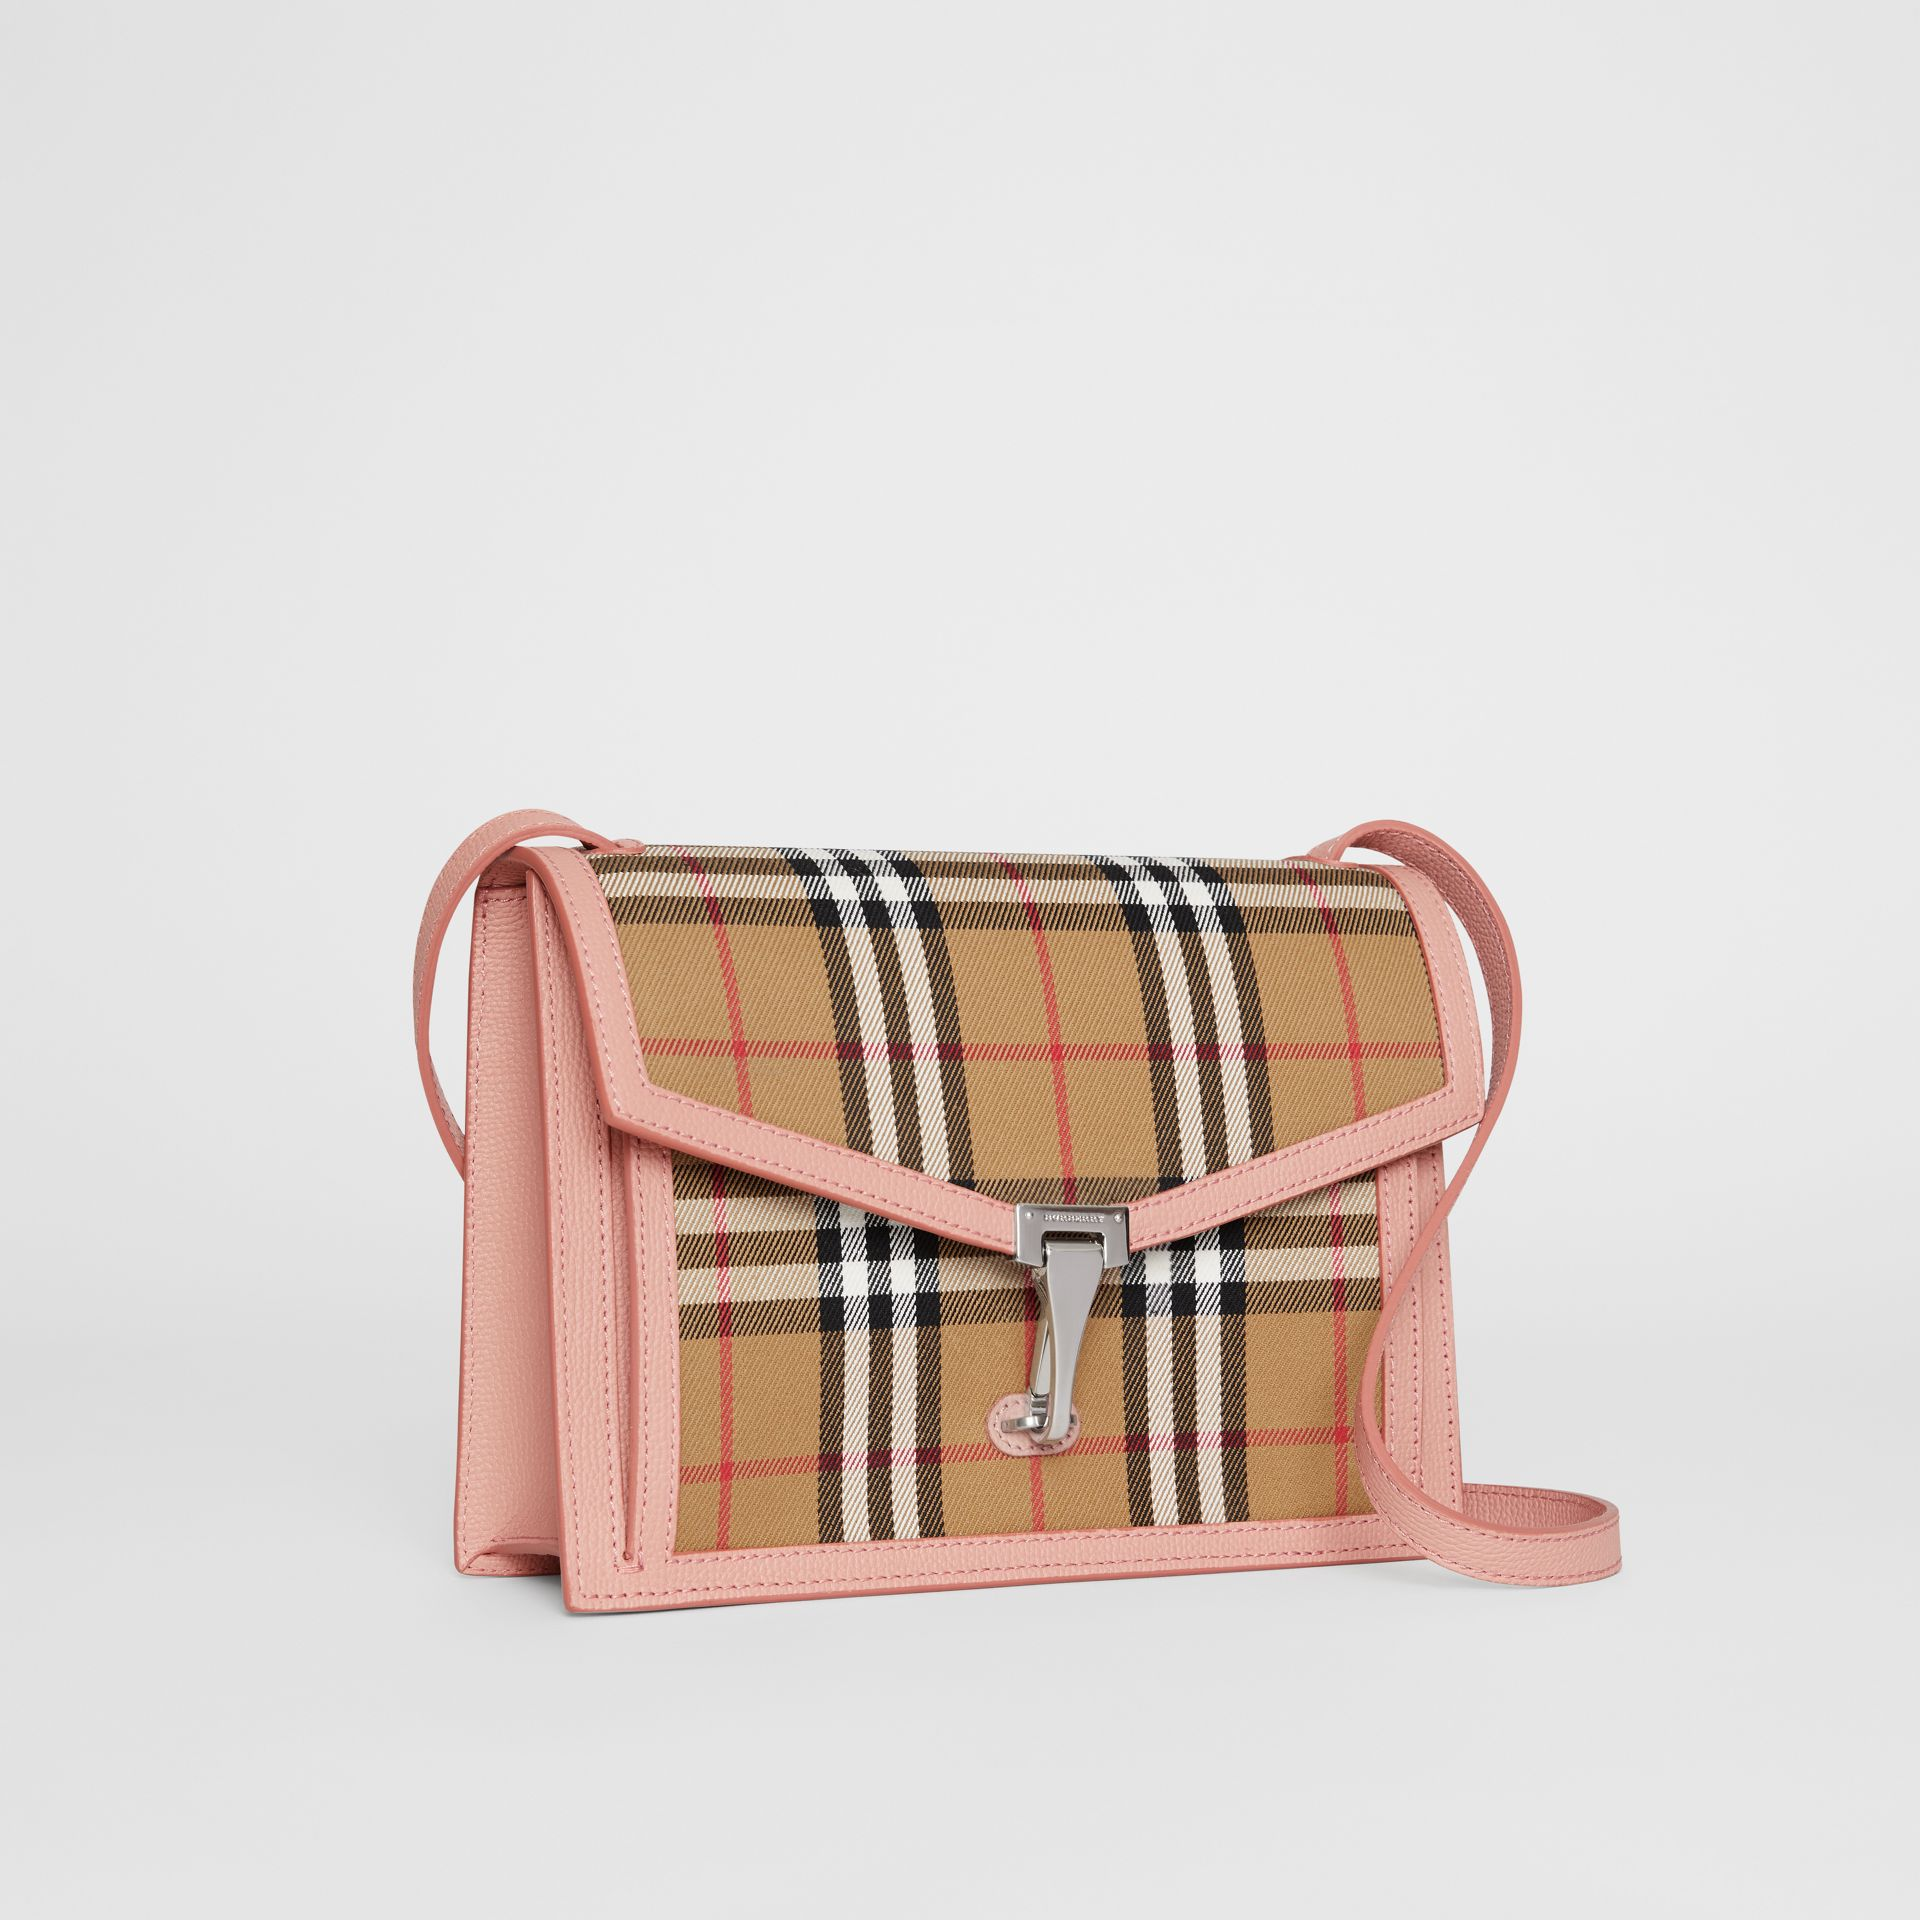 Small Vintage Check and Leather Crossbody Bag in Ash Rose - Women | Burberry - gallery image 6